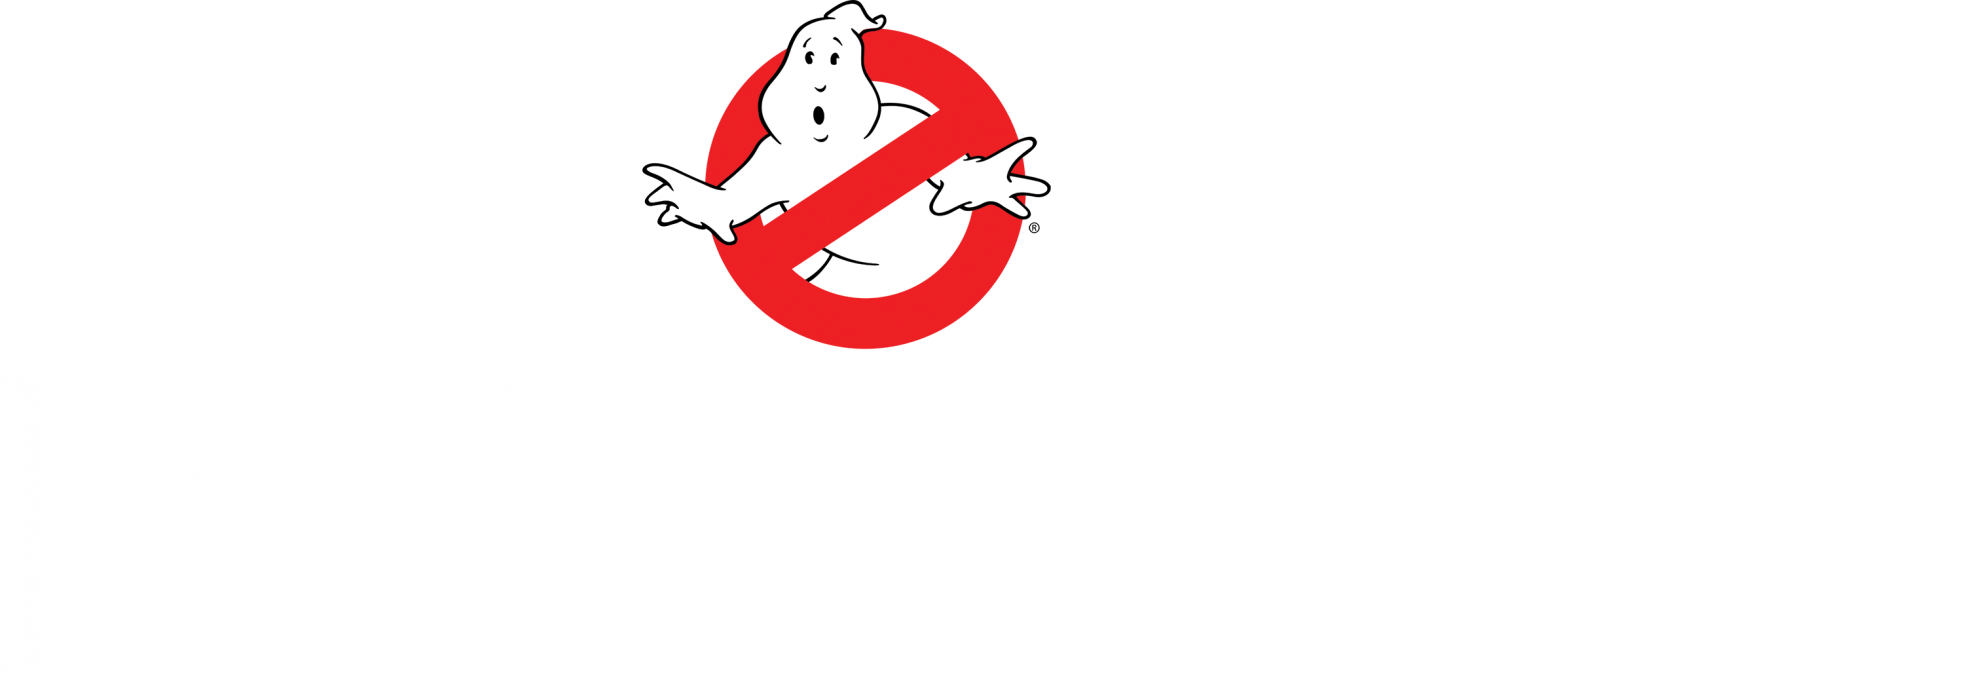 GHOST BUSTERS WHITE